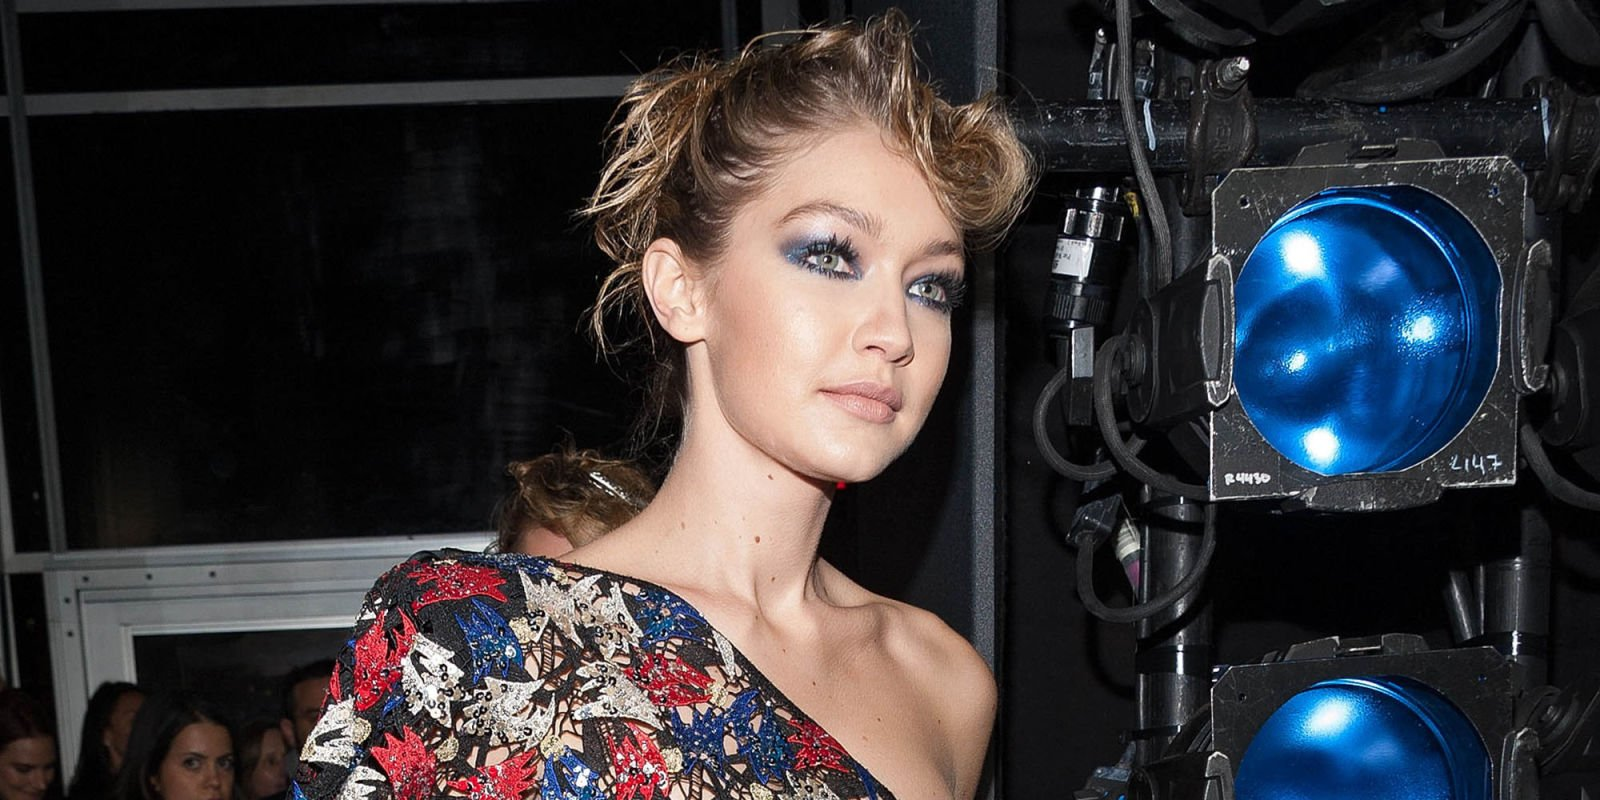 Gigi Hadid showed us how to wear spring's hottest beauty trend on the Zoolander 2 runway https://t.co/DS7tlhww5X https://t.co/Qooz9Bcgqh